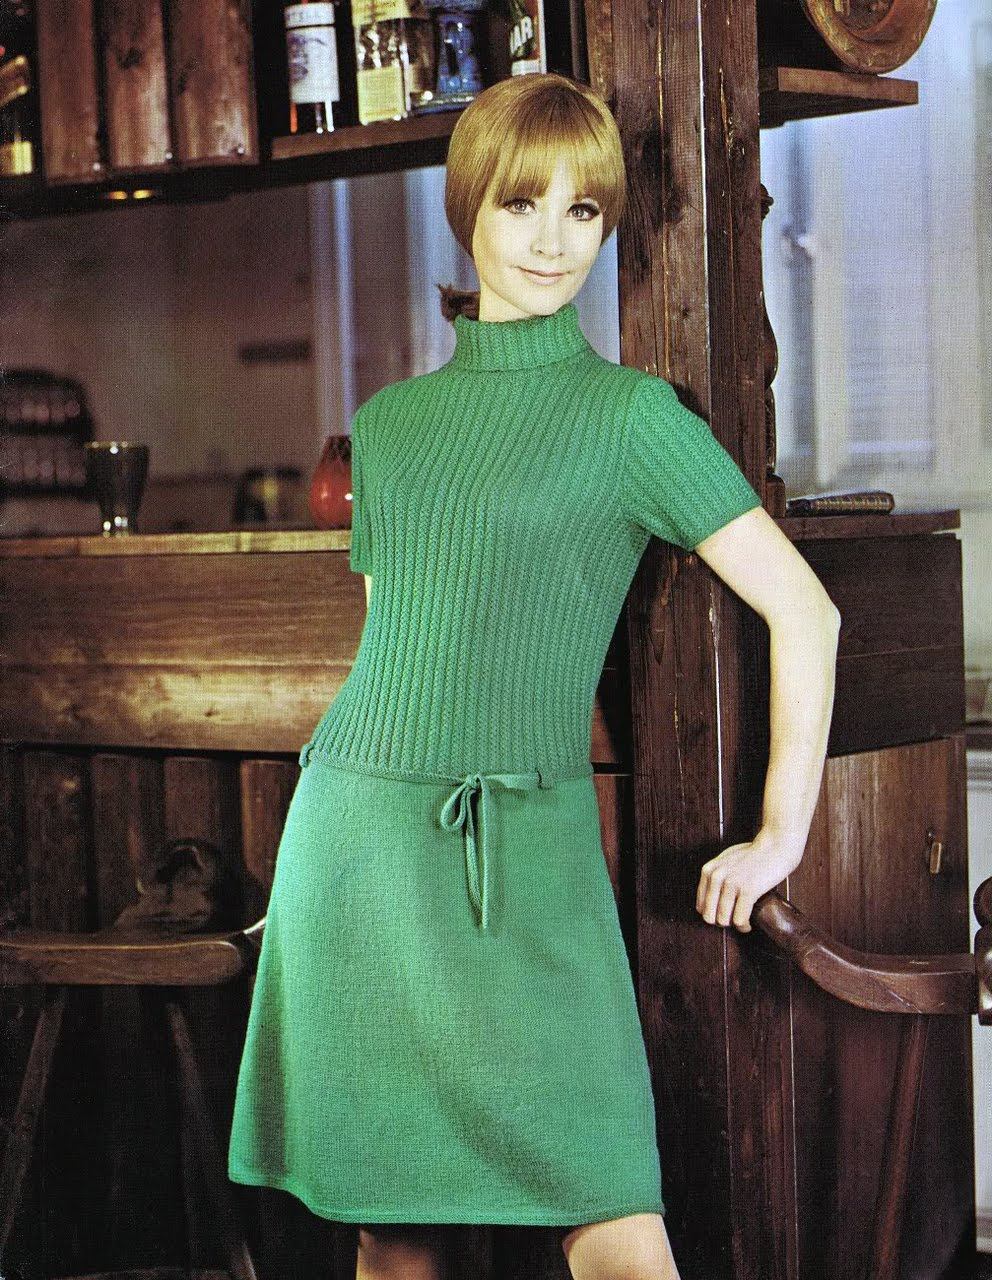 Modern 1960s Fashion Classic from the 1960s (no